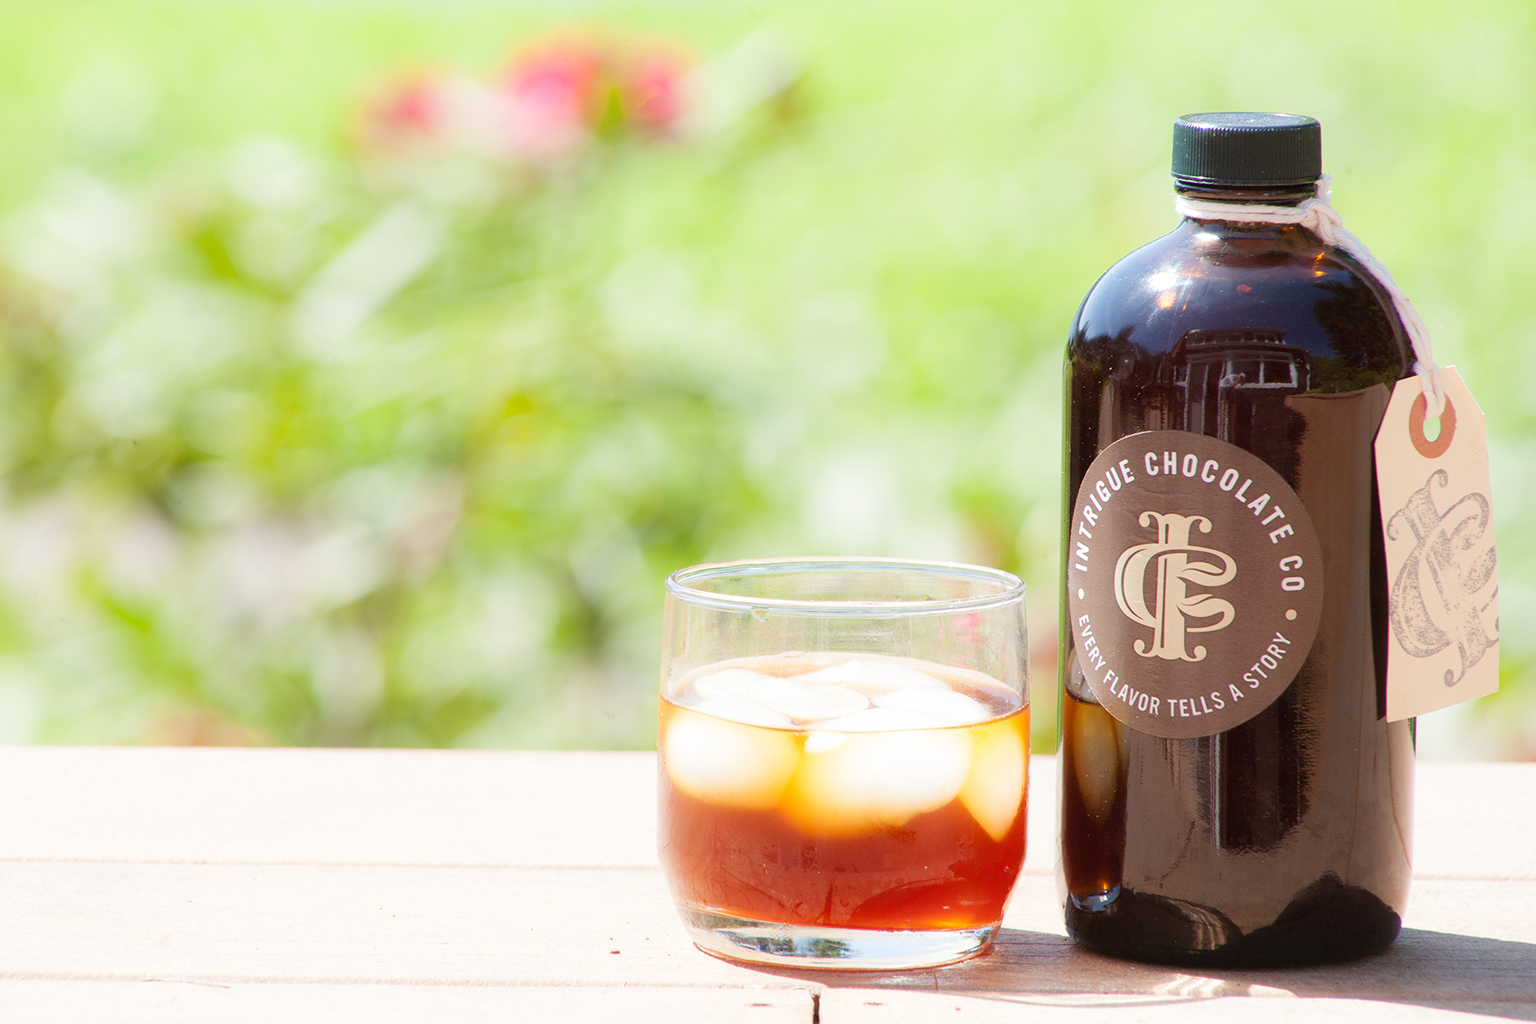 Cocoa Coffee Cold Brew - Featuring Intrigue Chocolate Co.